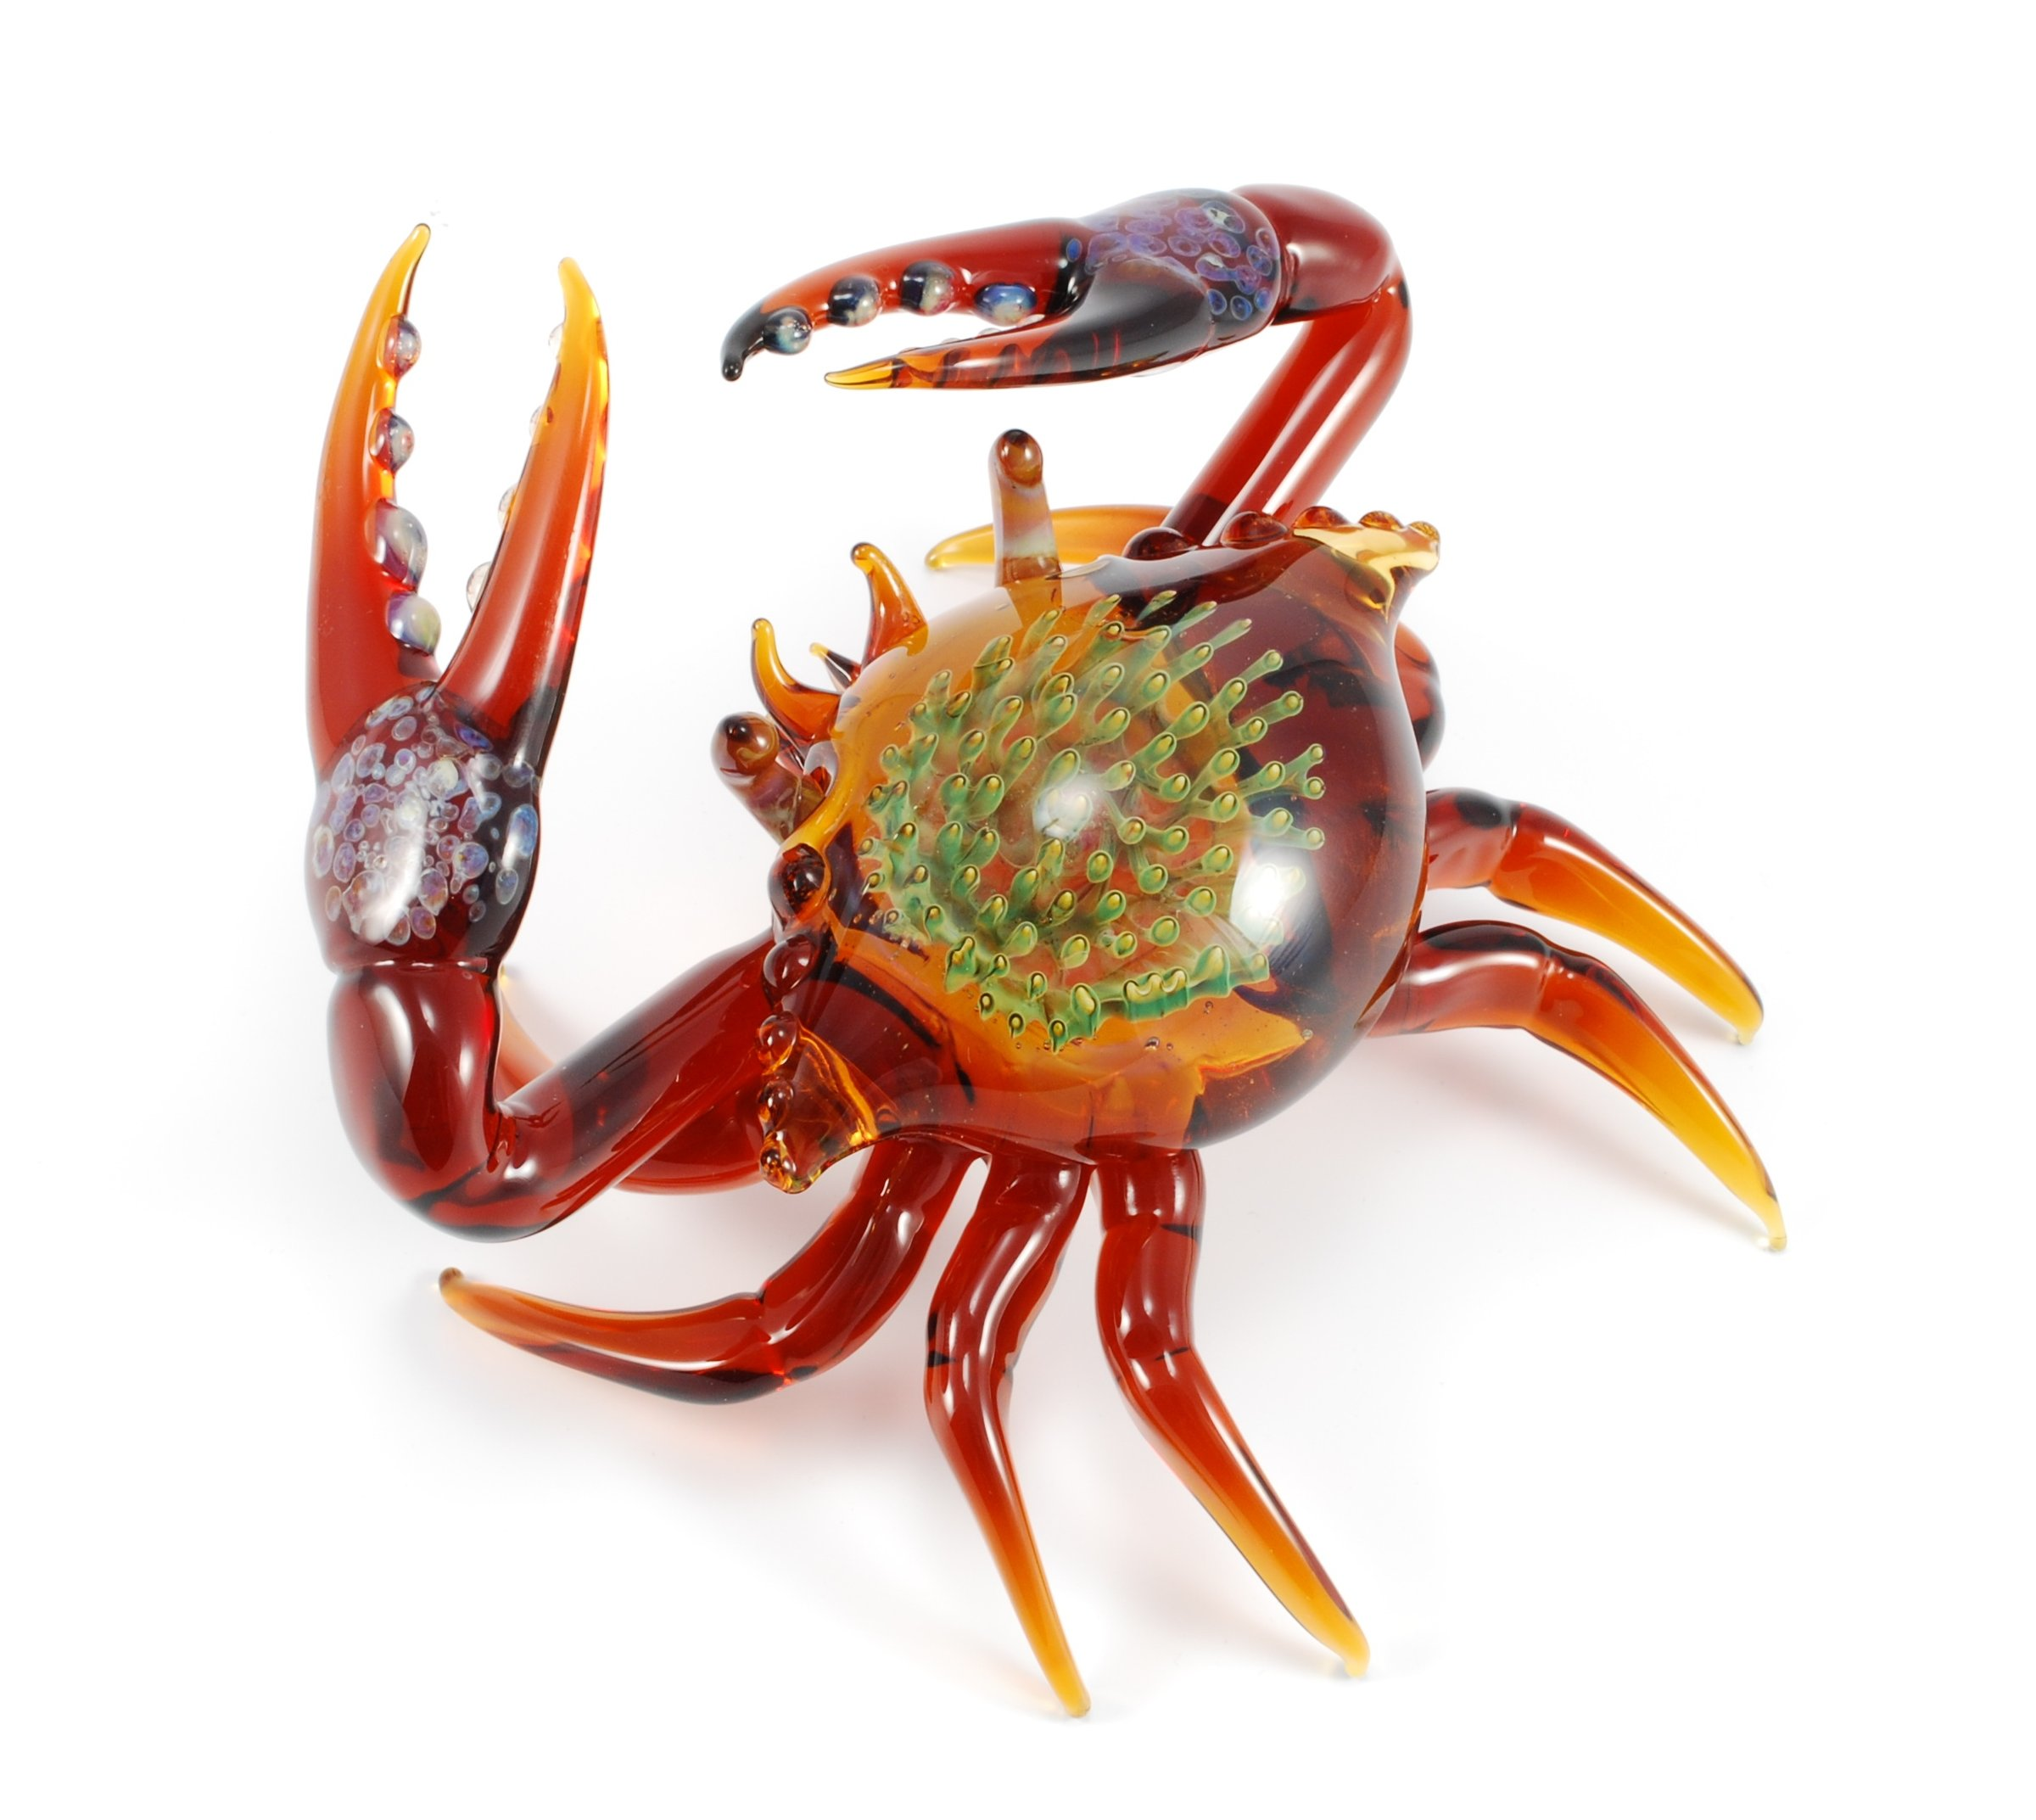 exotic crab sculpture in amber by jeremy sinkus art glass